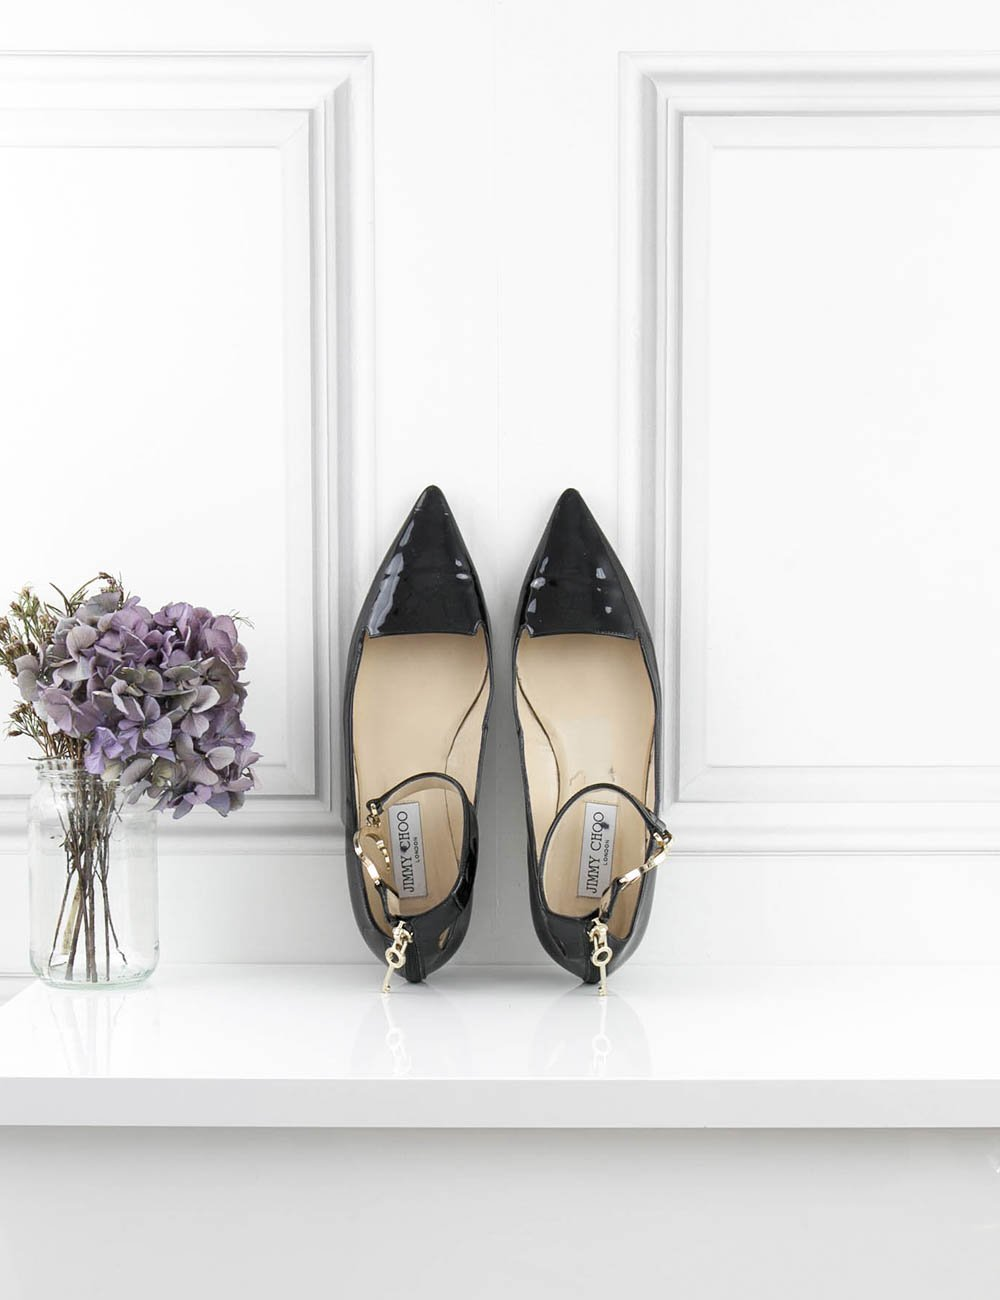 JIMMY CHOO SHOES Devise handcuff patented flats 6UK- My Wardrobe Mistakes